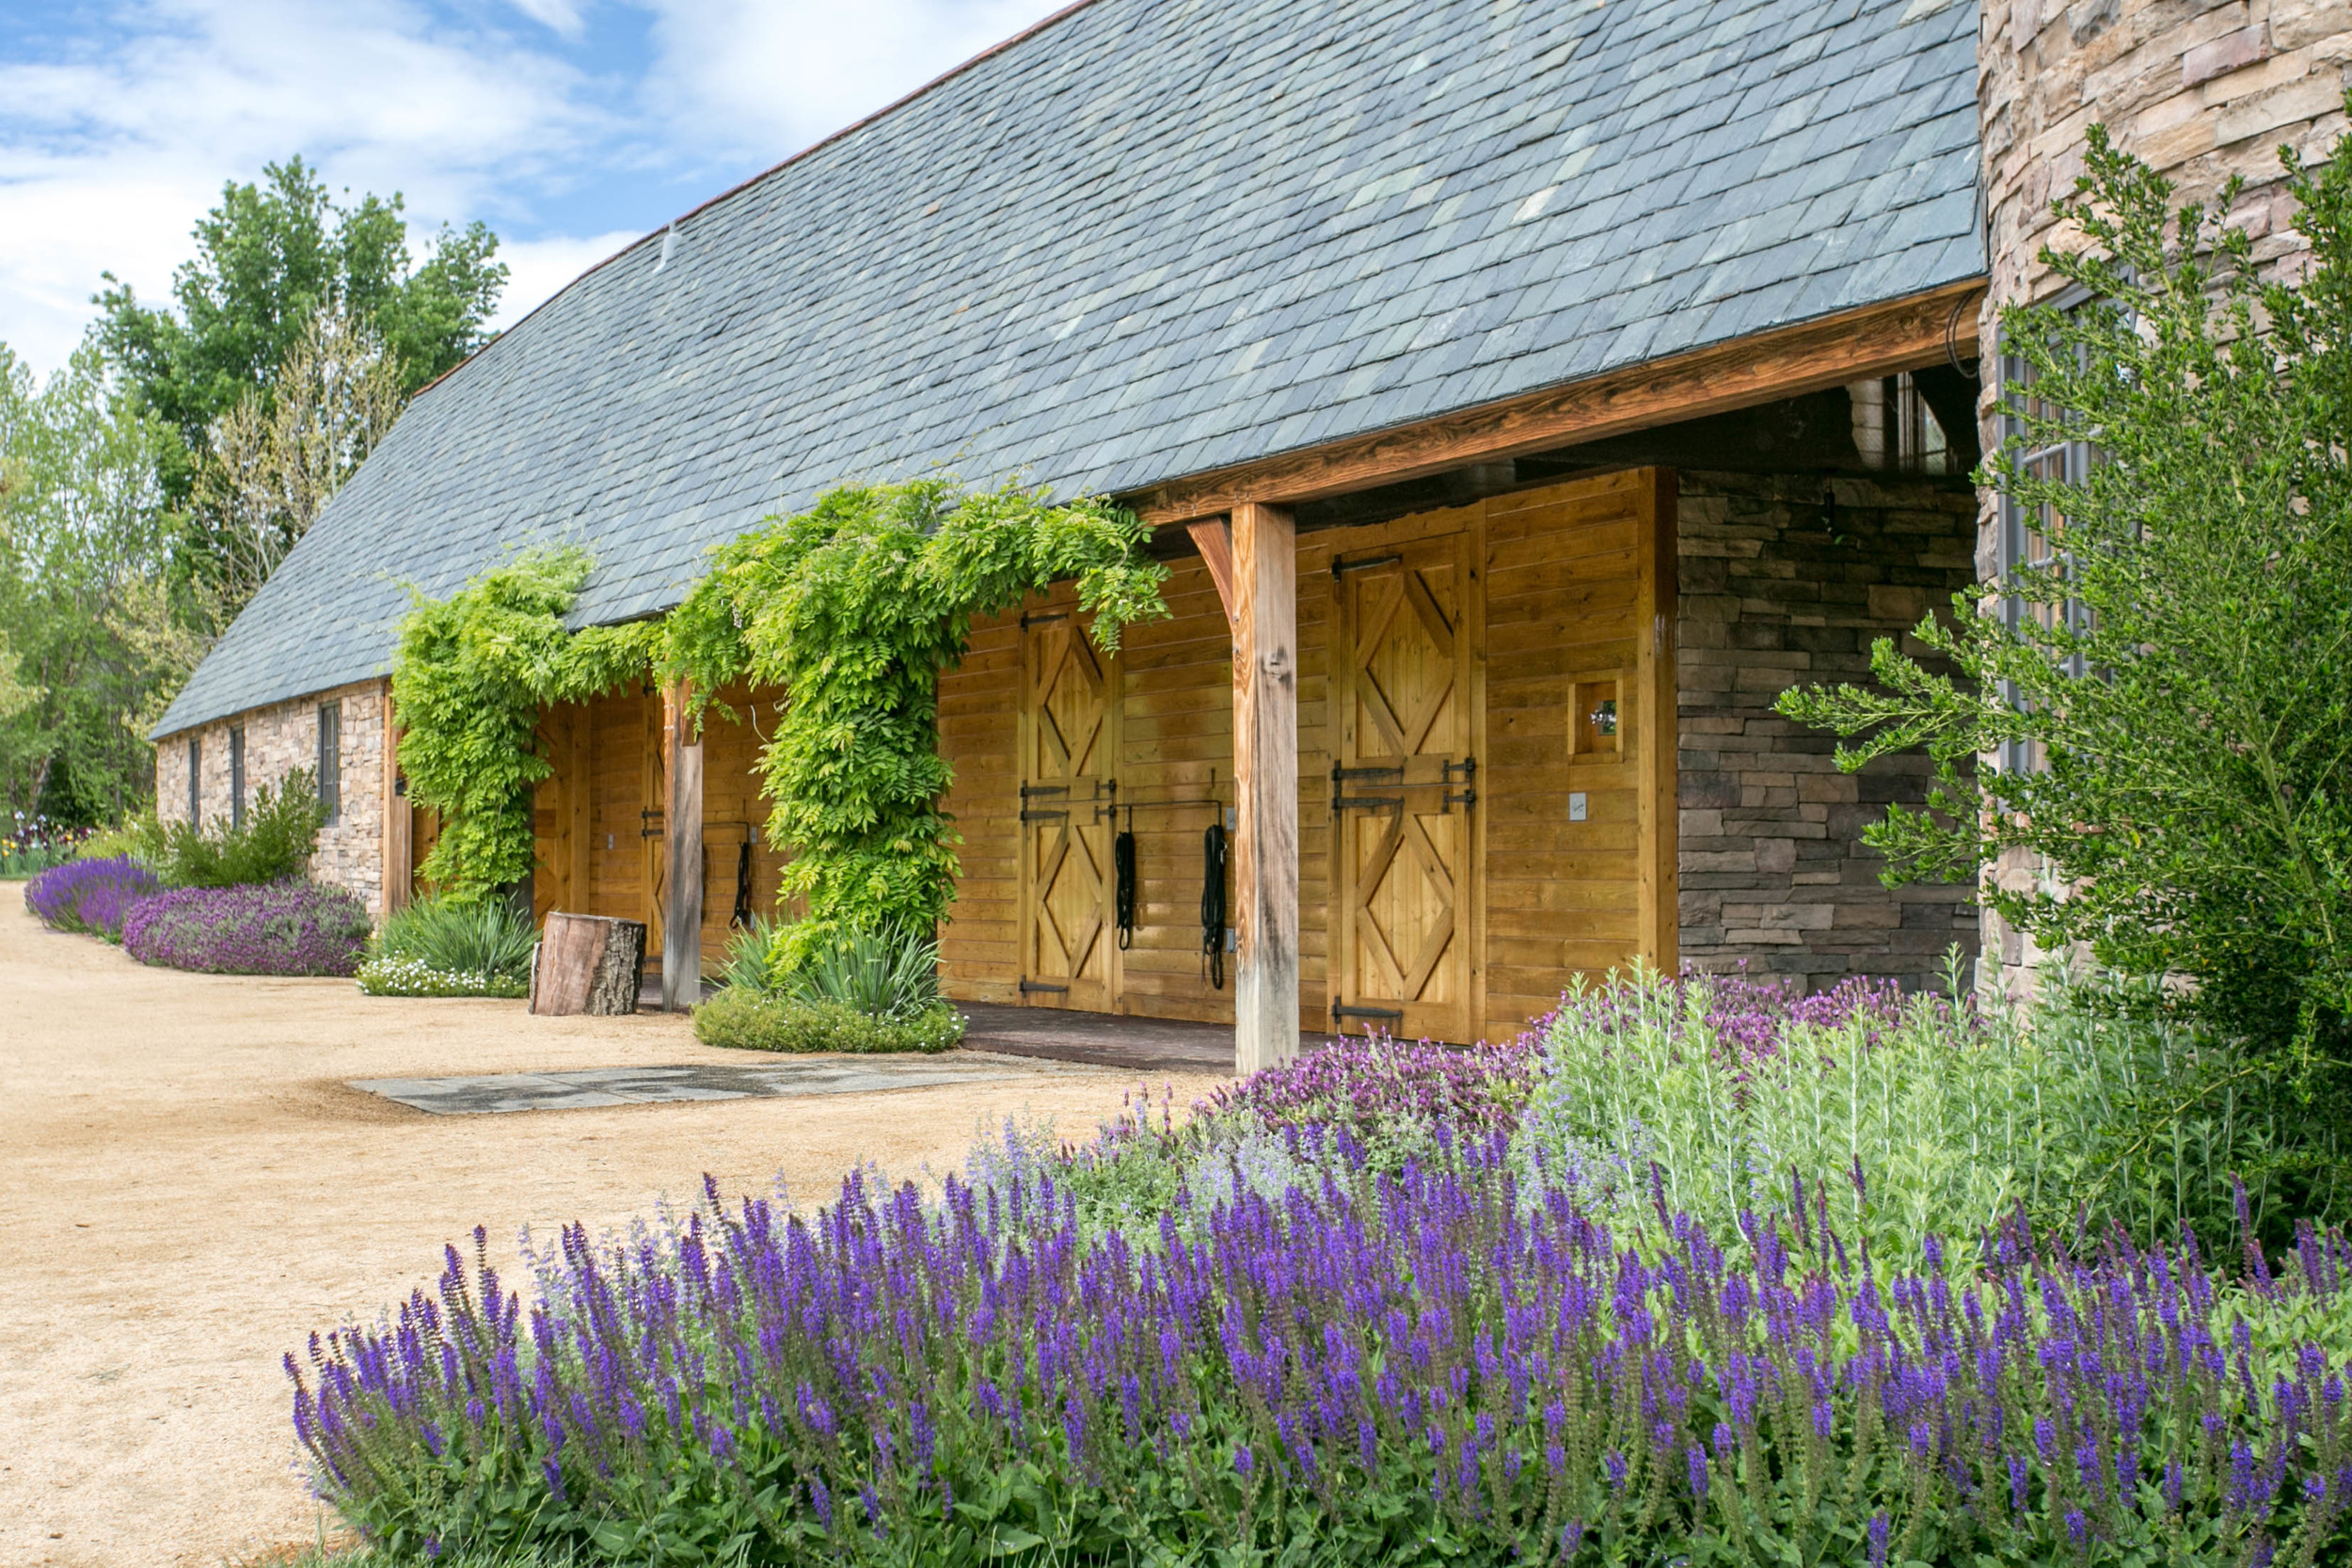 Spanish Lavender, Russian Sage , Salvia and Wisteria adorn the stable